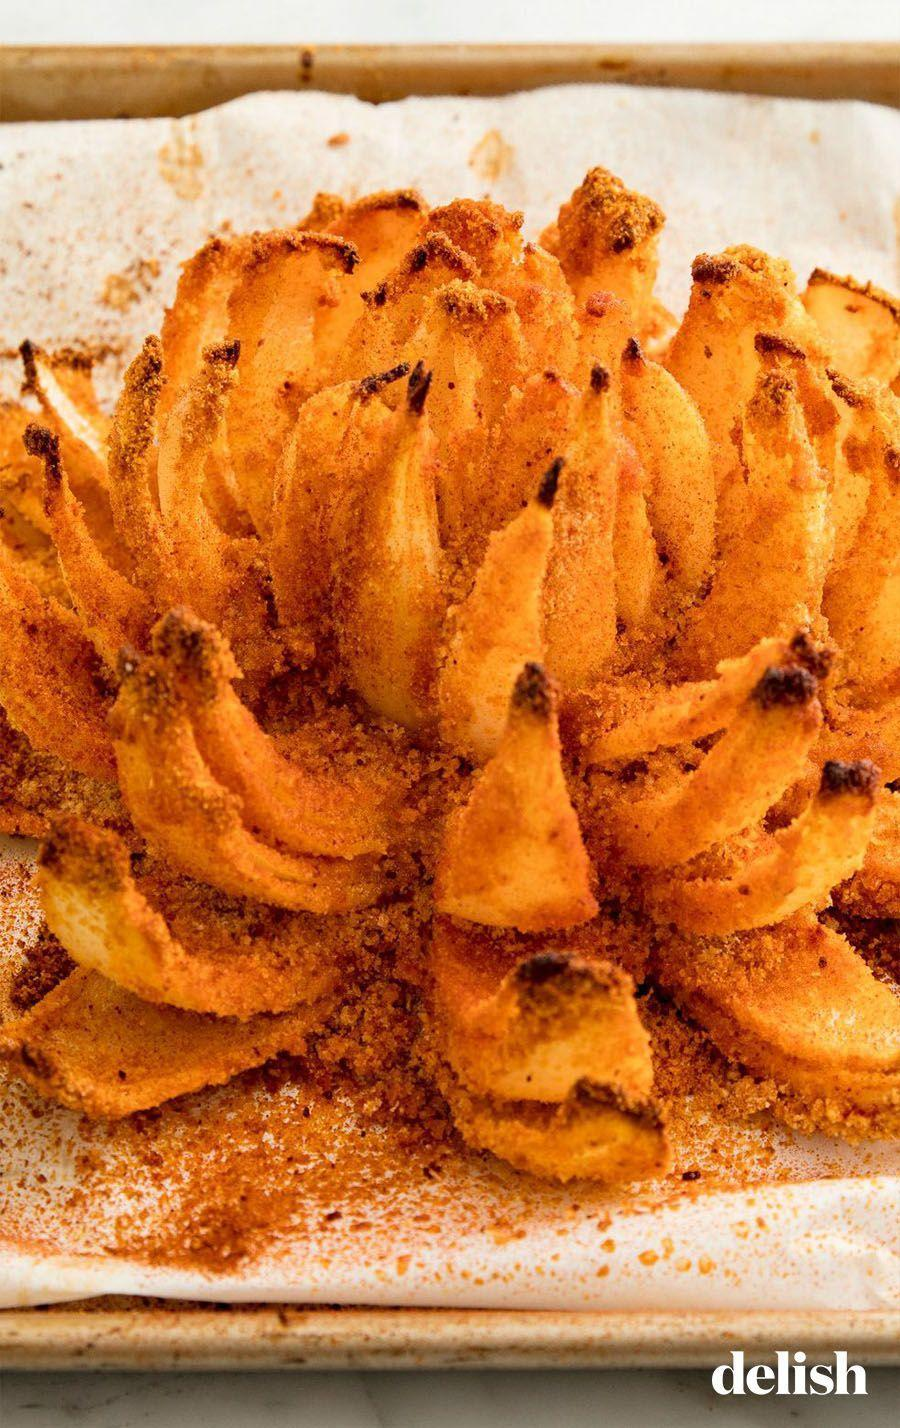 "<p>Who knew you could make this at home, let alone make it healthy?!</p><p>Get the recipe from <a href=""https://patty-delish.hearstapps.com/cooking/recipe-ideas/recipes/a53841/baked-bloomin-onion-recipe/"" rel=""nofollow noopener"" target=""_blank"" data-ylk=""slk:Delish"" class=""link rapid-noclick-resp"">Delish</a>.</p>"